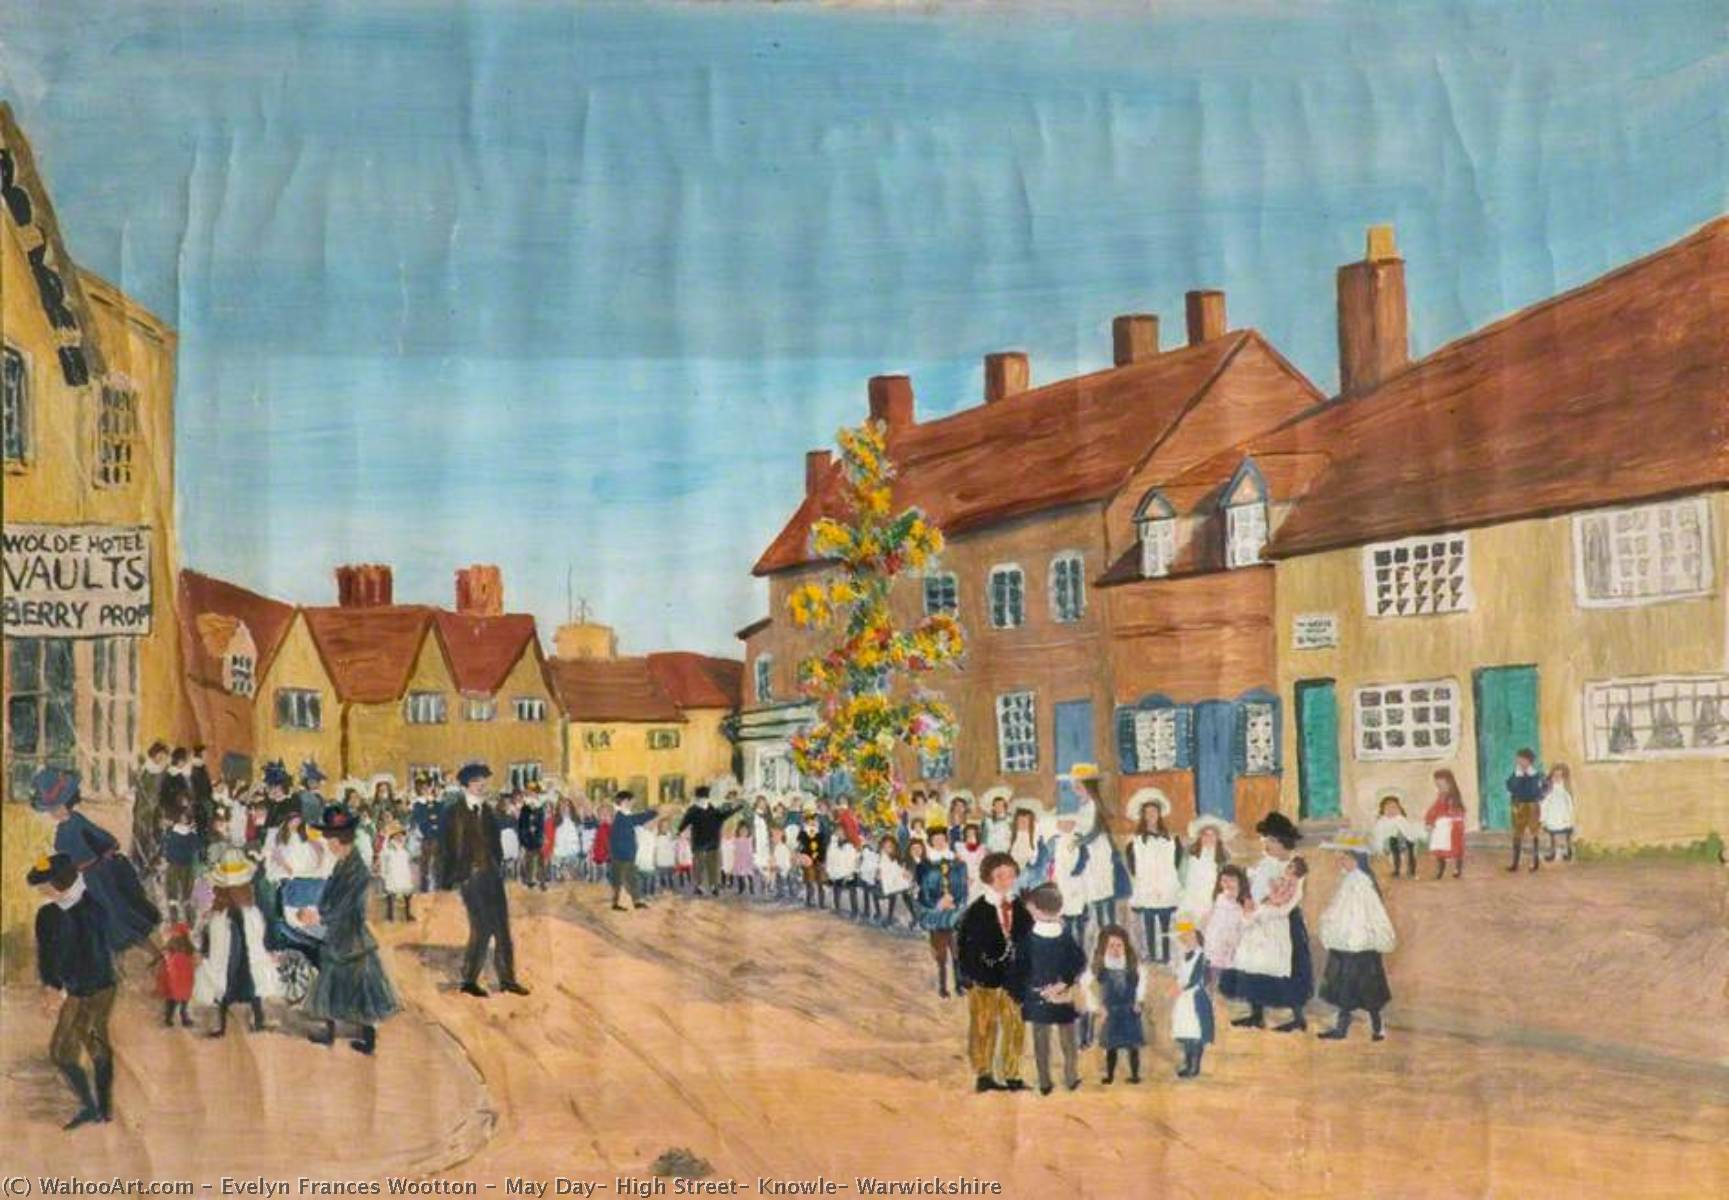 Wikioo.org - The Encyclopedia of Fine Arts - Painting, Artwork by Evelyn Frances Wootton - May Day, High Street, Knowle, Warwickshire